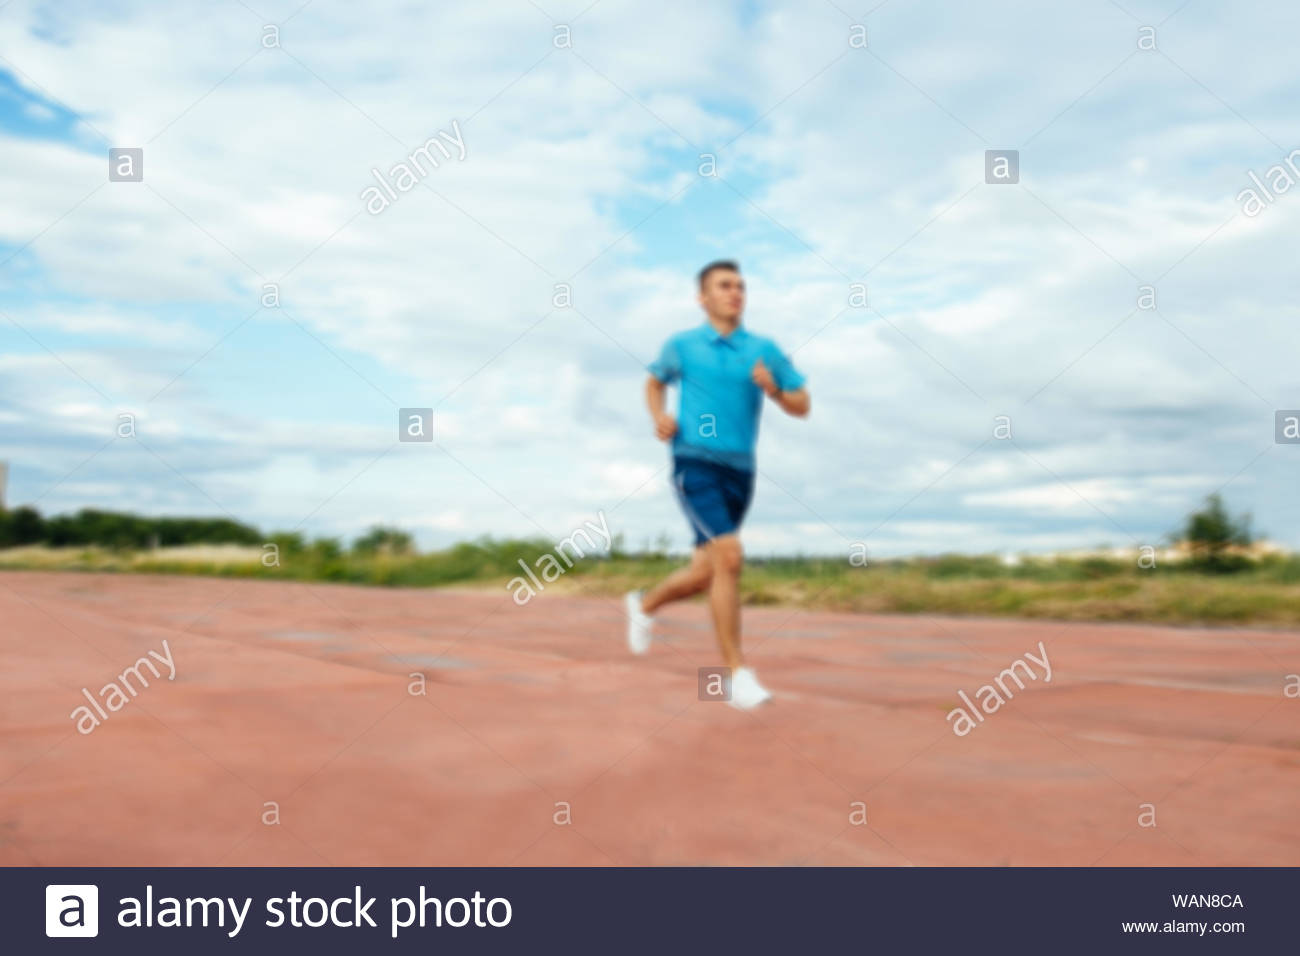 Young handsome active sportsman running on track field blurred 1300x956